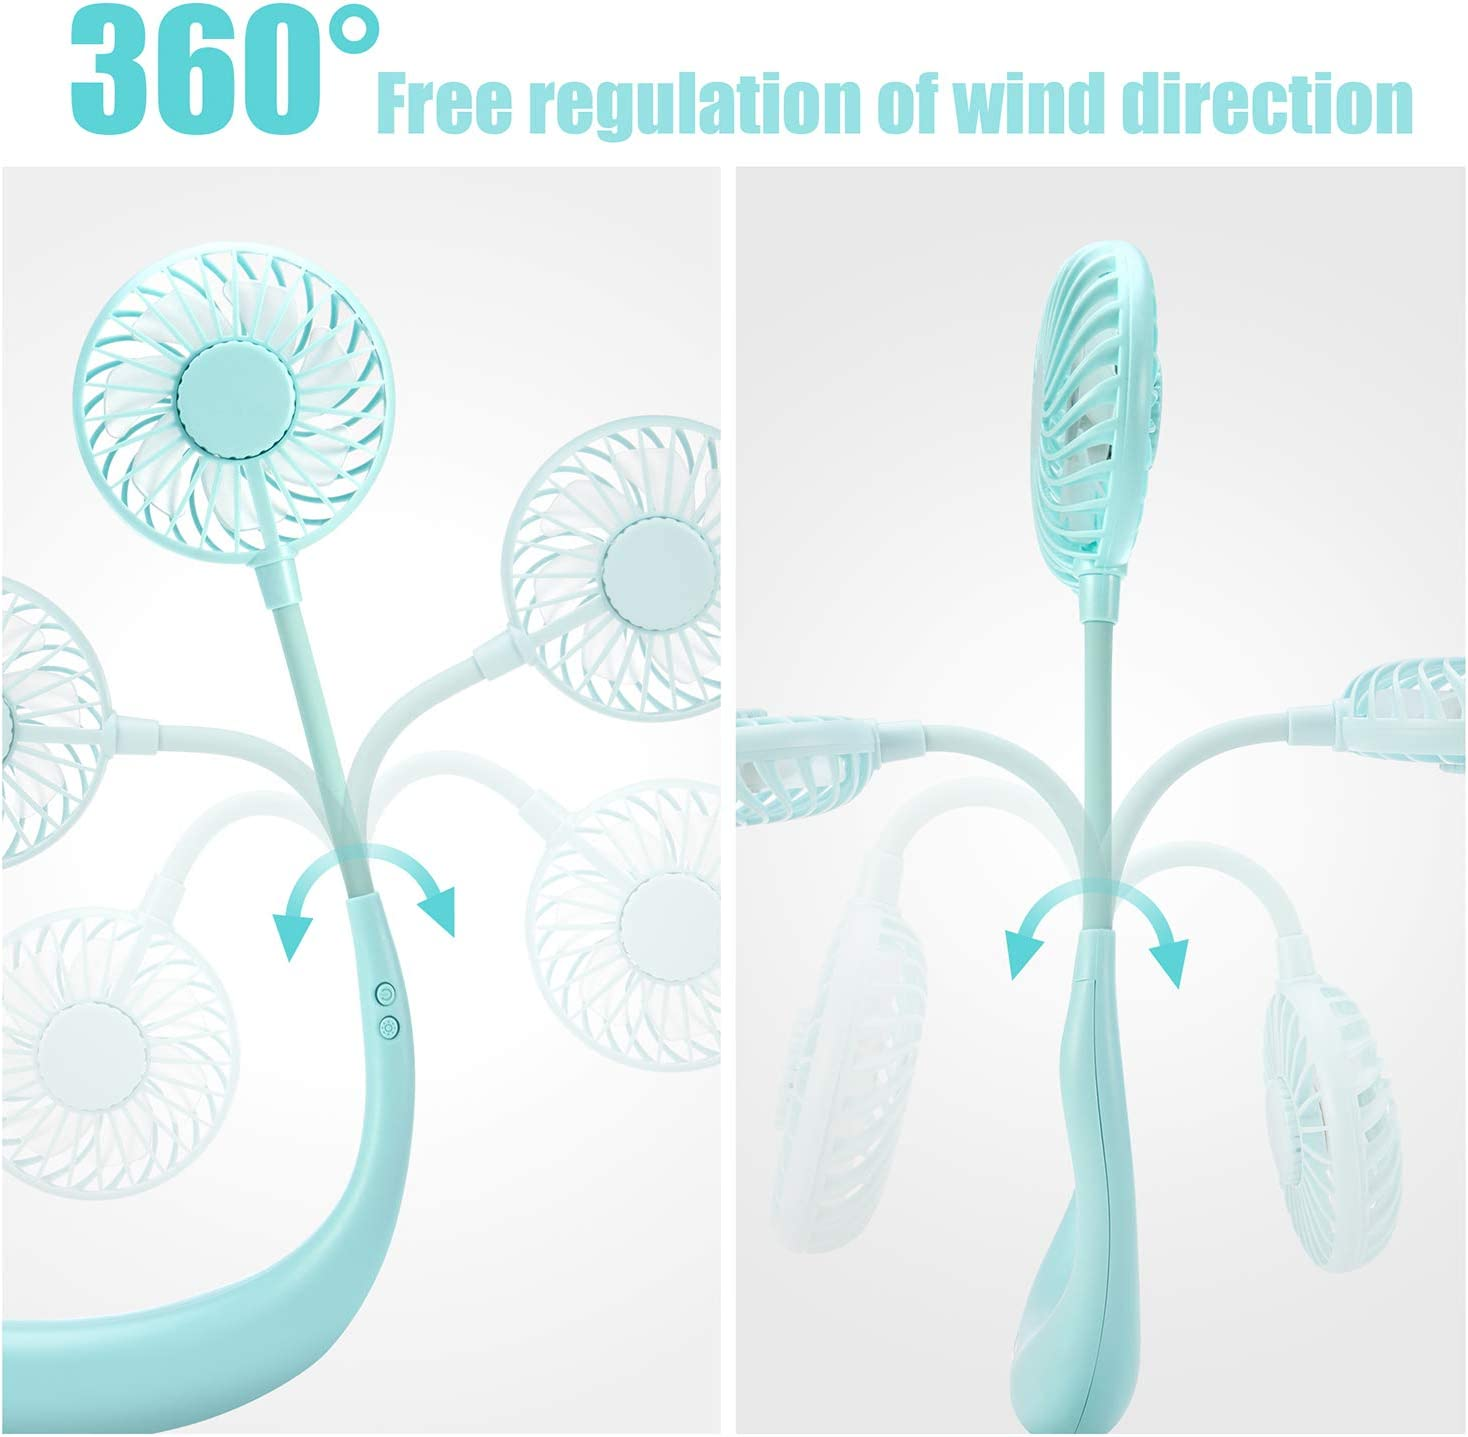 GINEKOO Portable Hanging Neck Fan Hand Free Mini USB Fan with Rechargeable Battery 3 Level Air speeds & 2 Modes LED Light Sport Office 2 Fans With 360/° Free Rotation perfect for Outdoor Travel Black